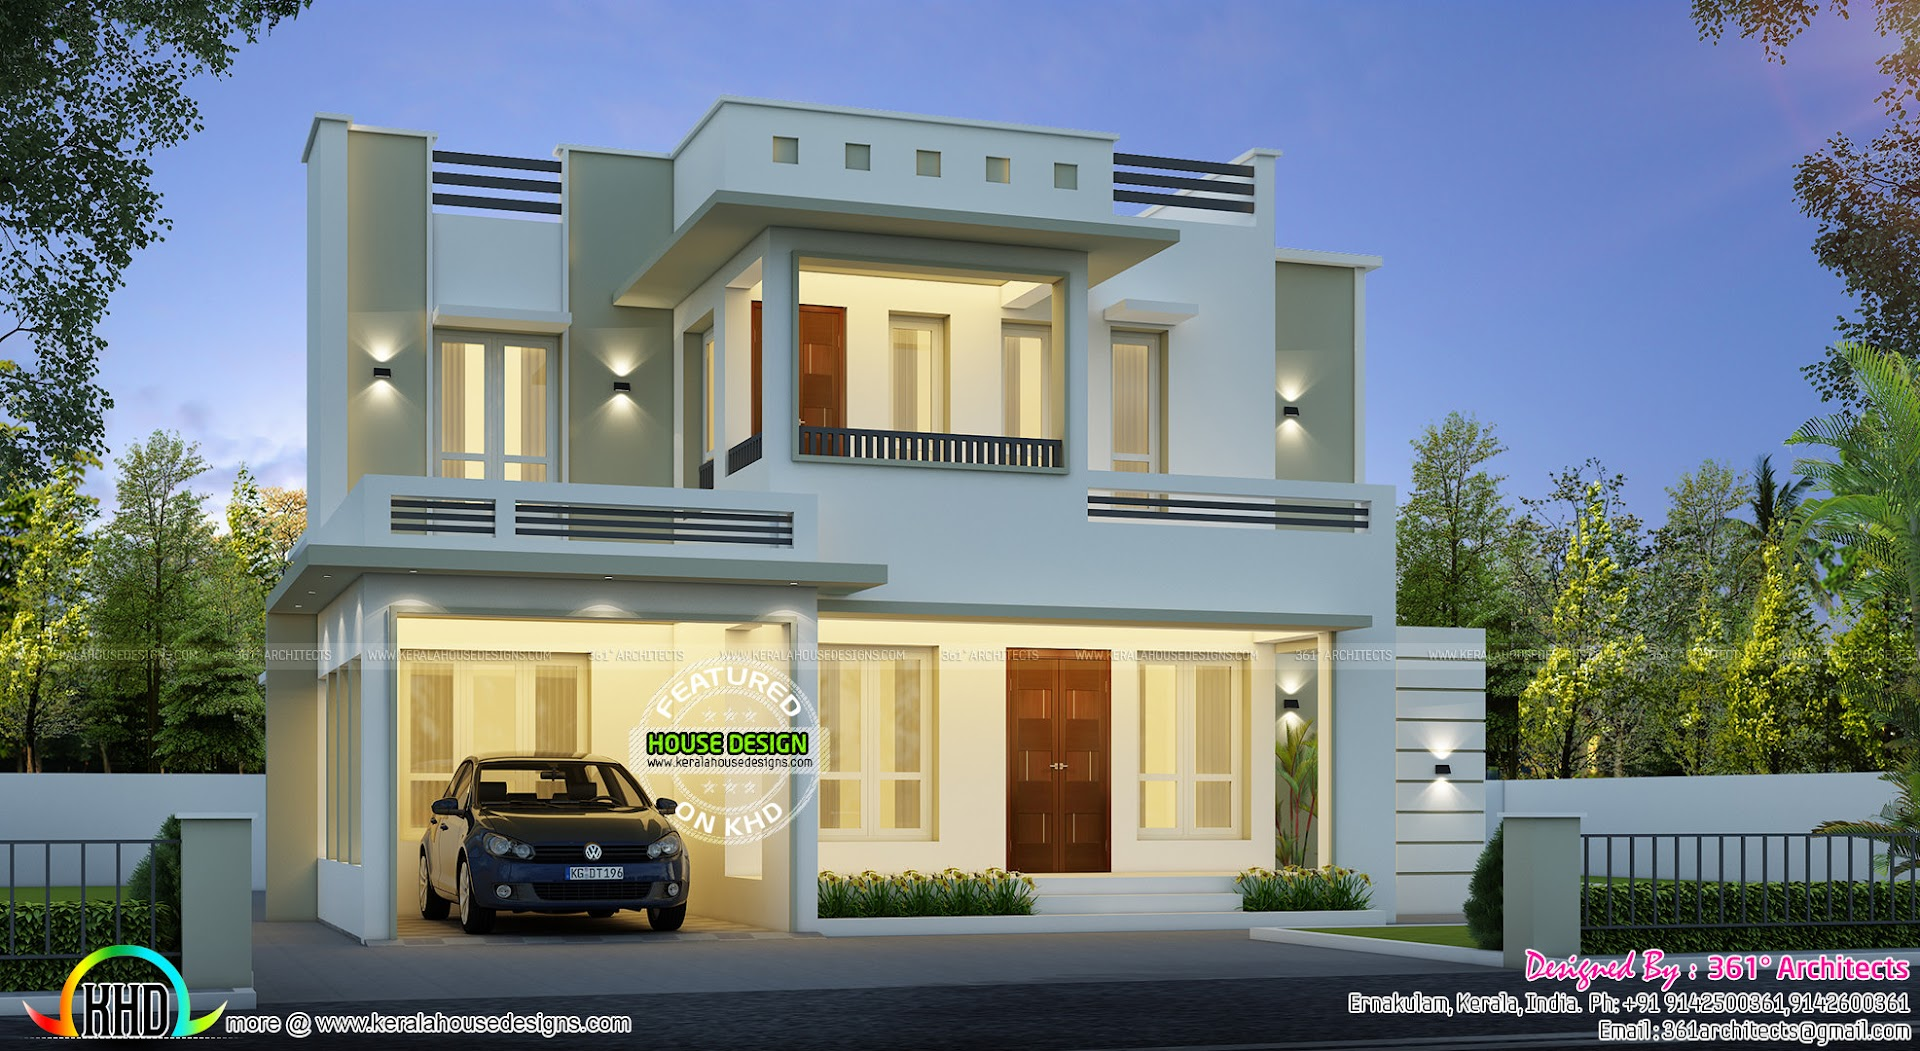 construction cost rs2800000 42000 may change time to time and place to place design style contemporary - Home Design 2016